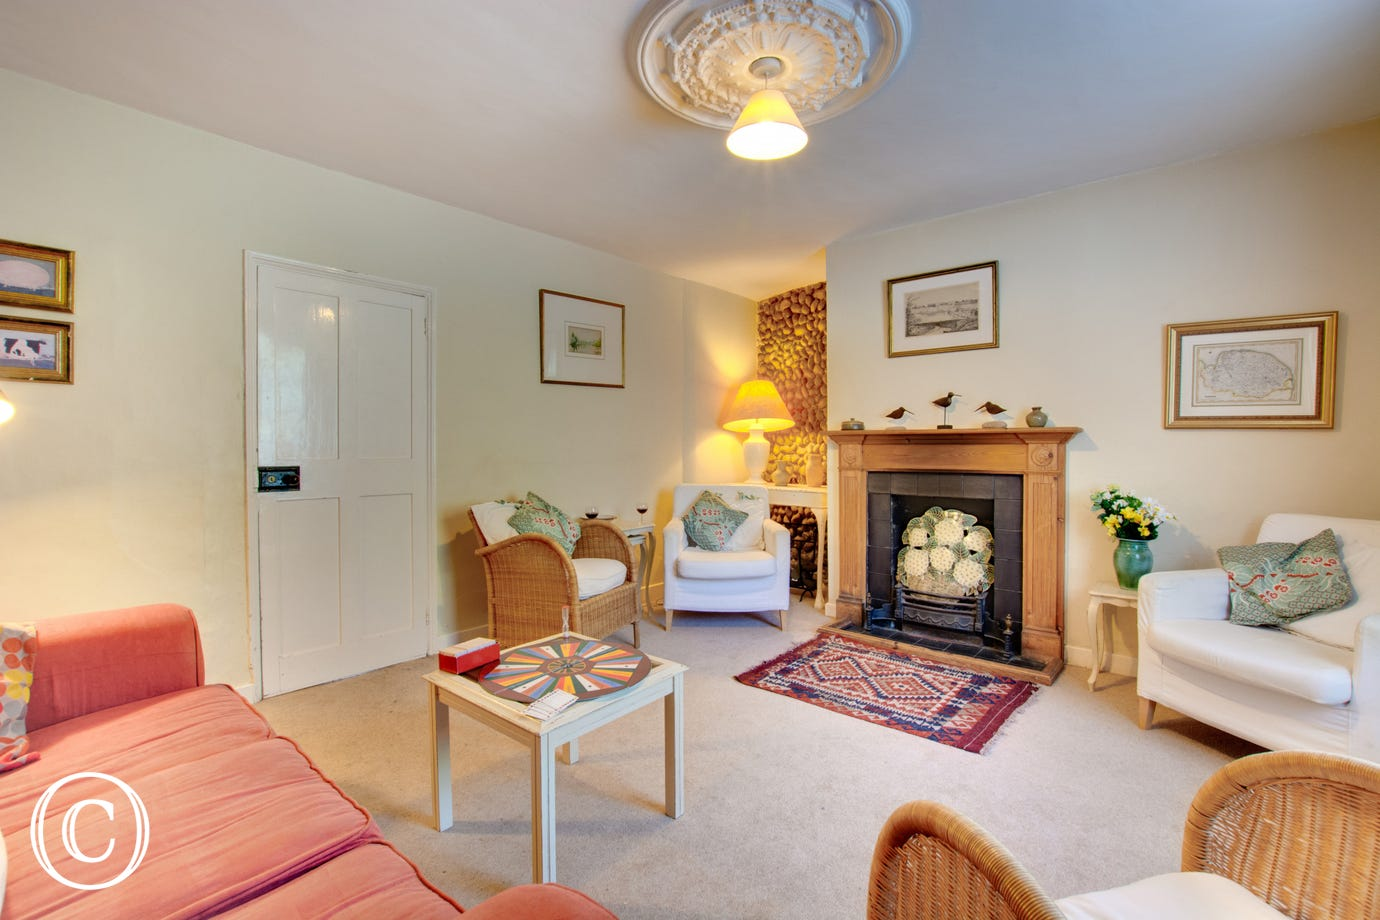 Traditional sitting room with comfortable seating and a woodburner for cosy evenings